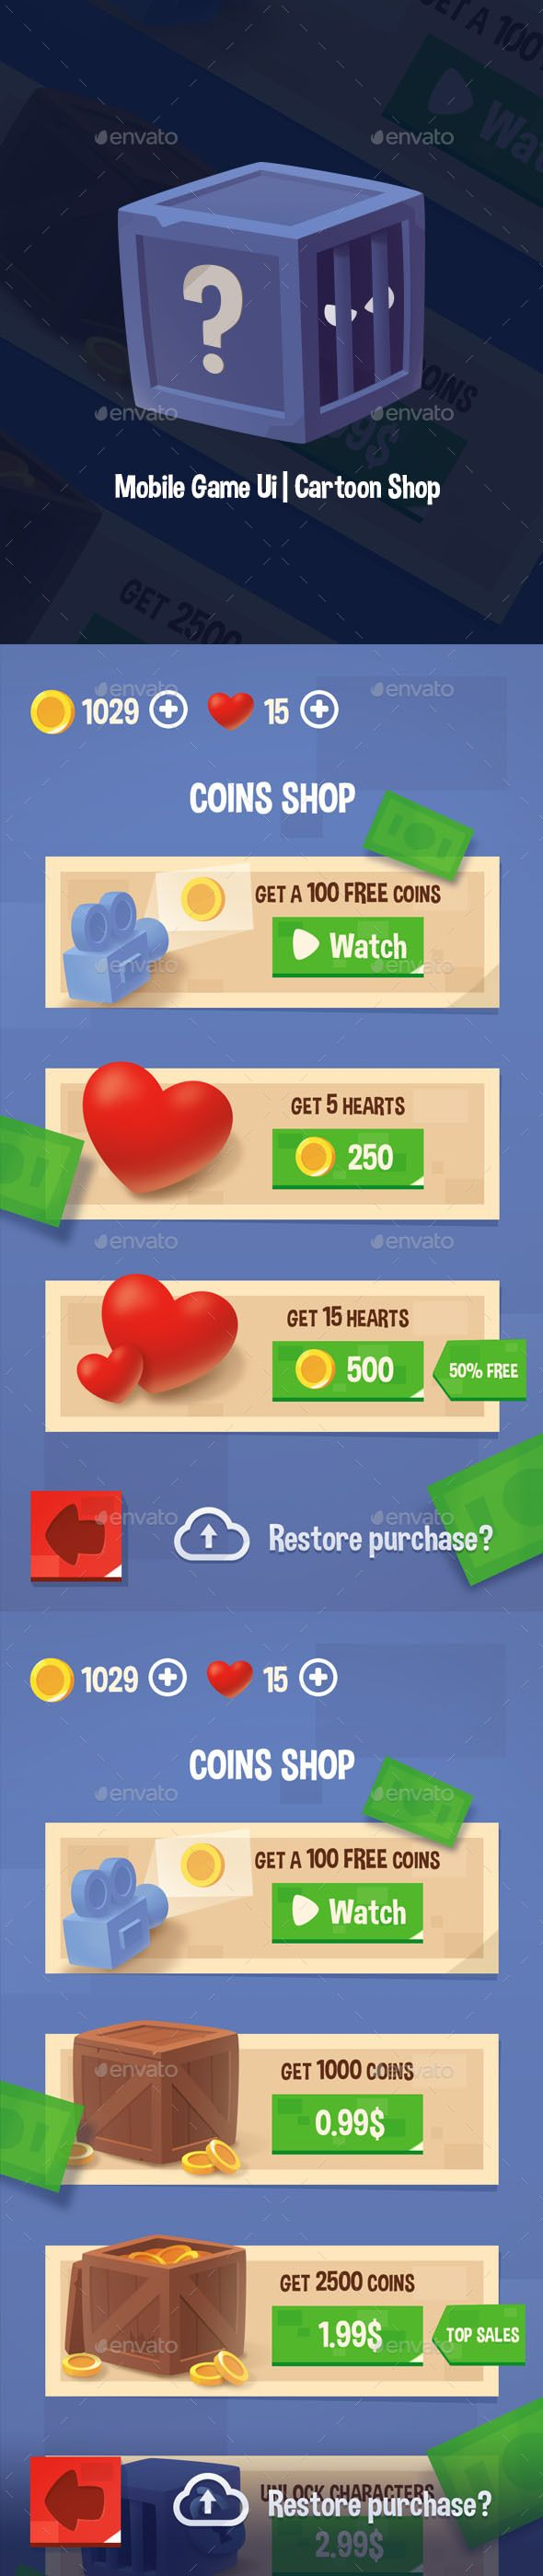 Mobile Game Ui | Cartoon Shop - #User #Interfaces #Game Assets Download here: https://graphicriver.net/item/mobile-game-ui-cartoon-shop/20383168?ref=alena994